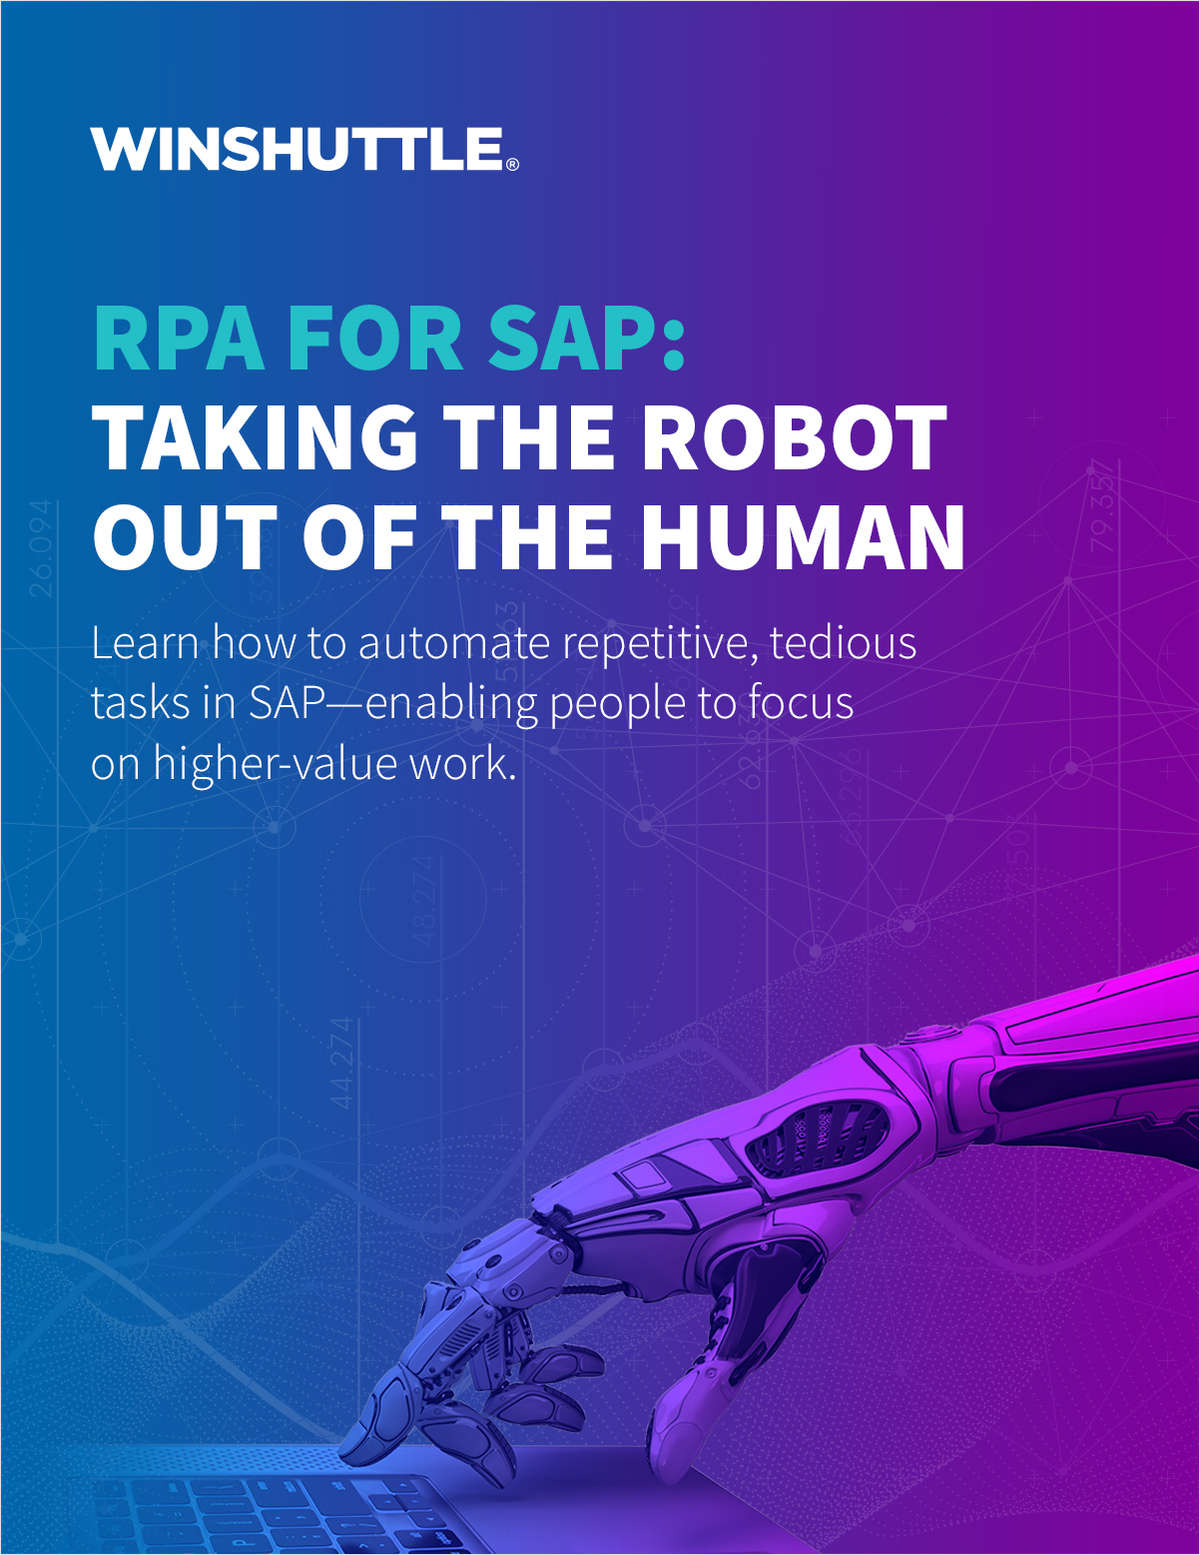 RPA For SAP: Taking the Robot Out of the Human